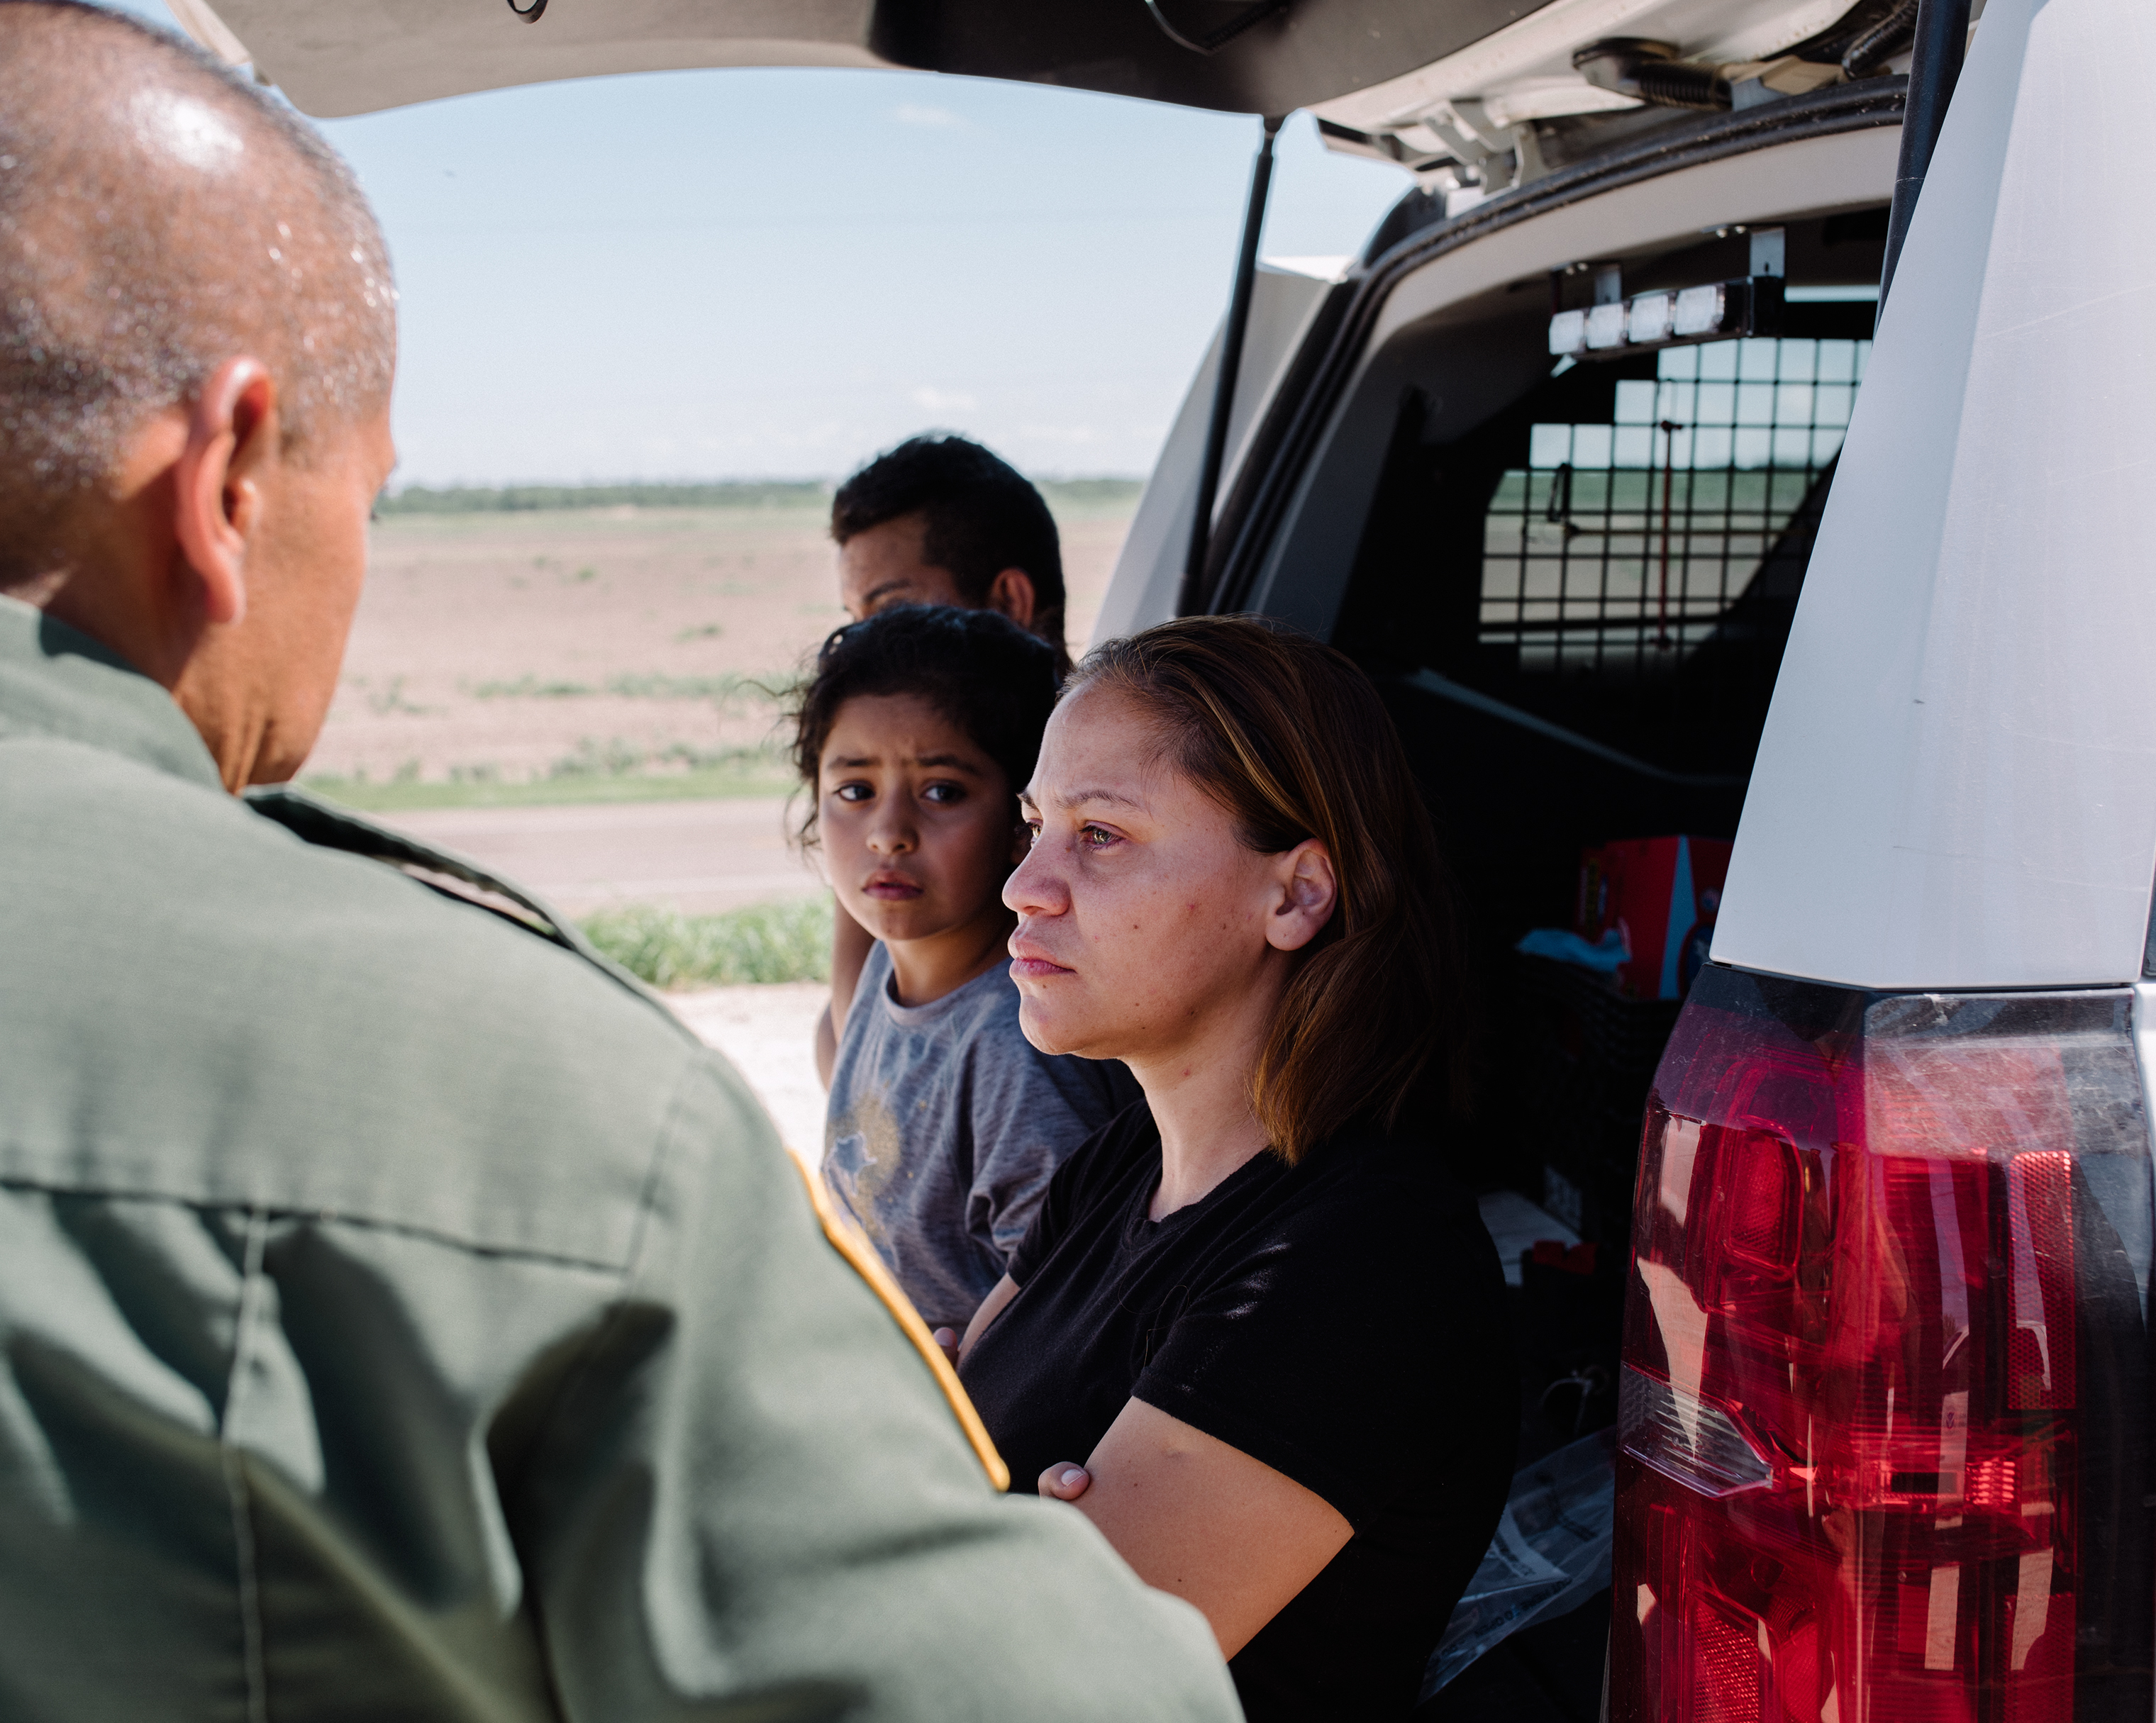 Miriam Castillo Castillo, next to her young niece, speaks with a border officer after crossing the river to McAllen on Sept. 25; members of their group said they were fleeing politically motivated violence at home.